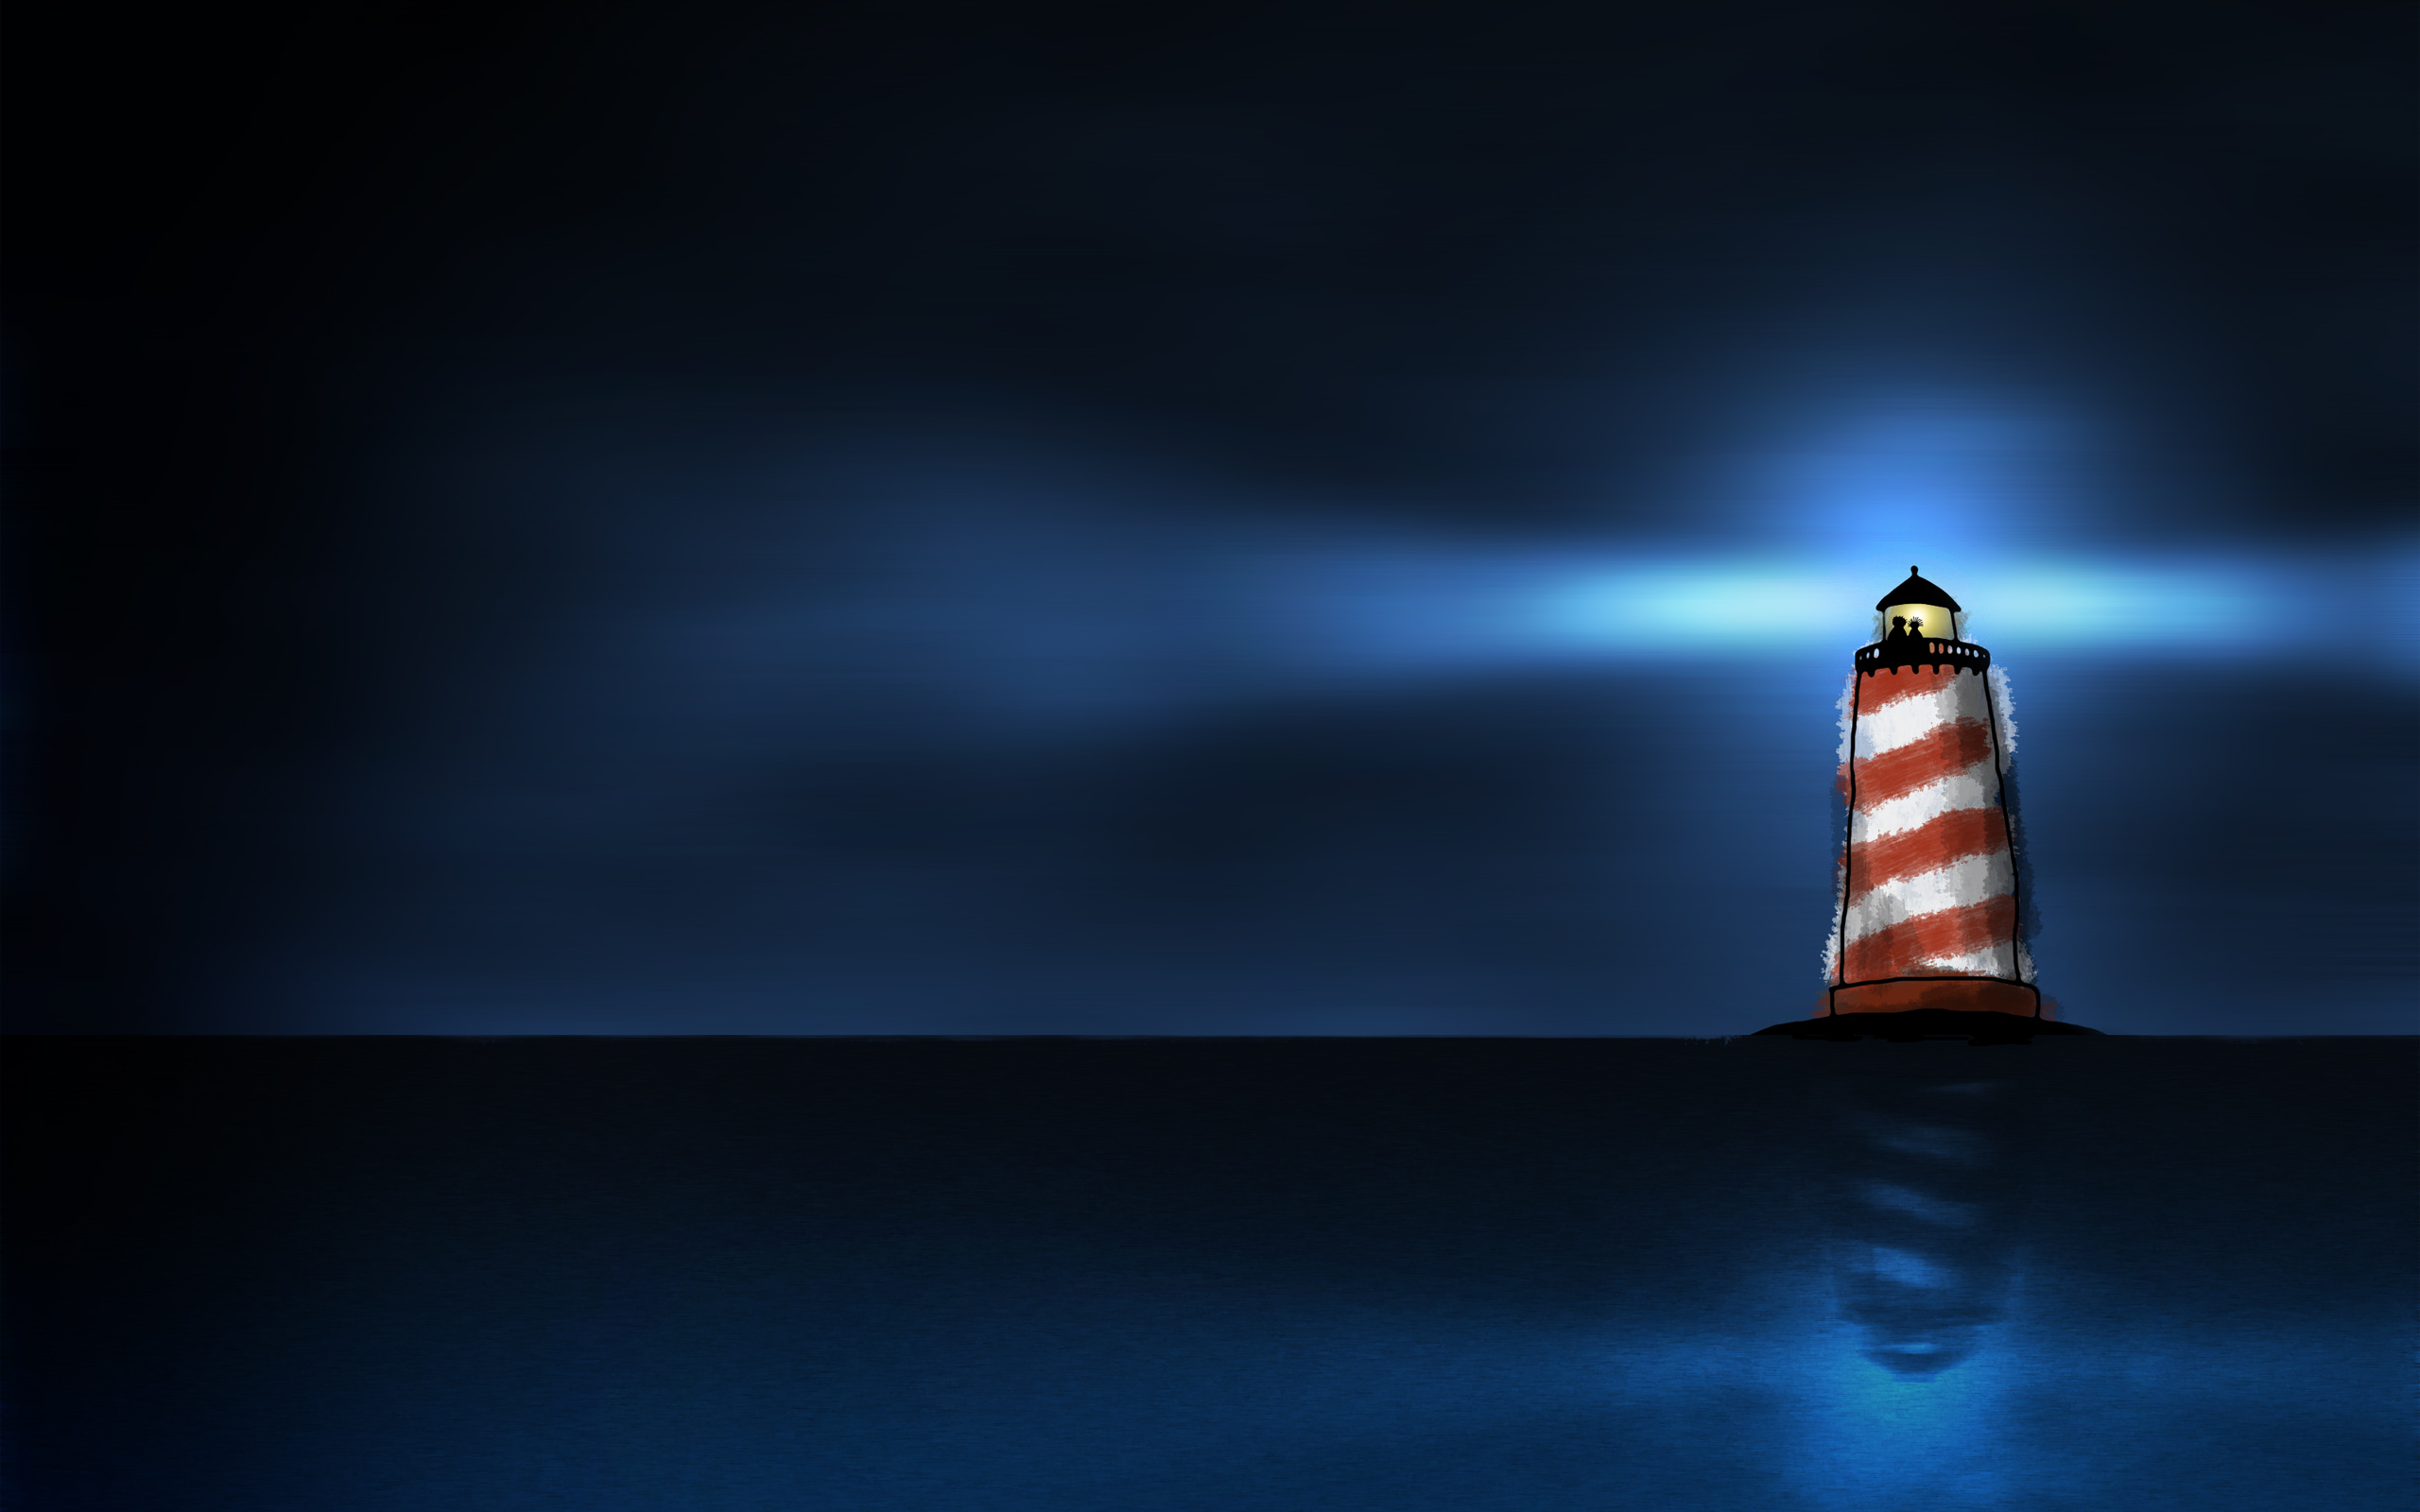 The lighthouse Wallpapers   2013 HD Wallpapers 2560x1600